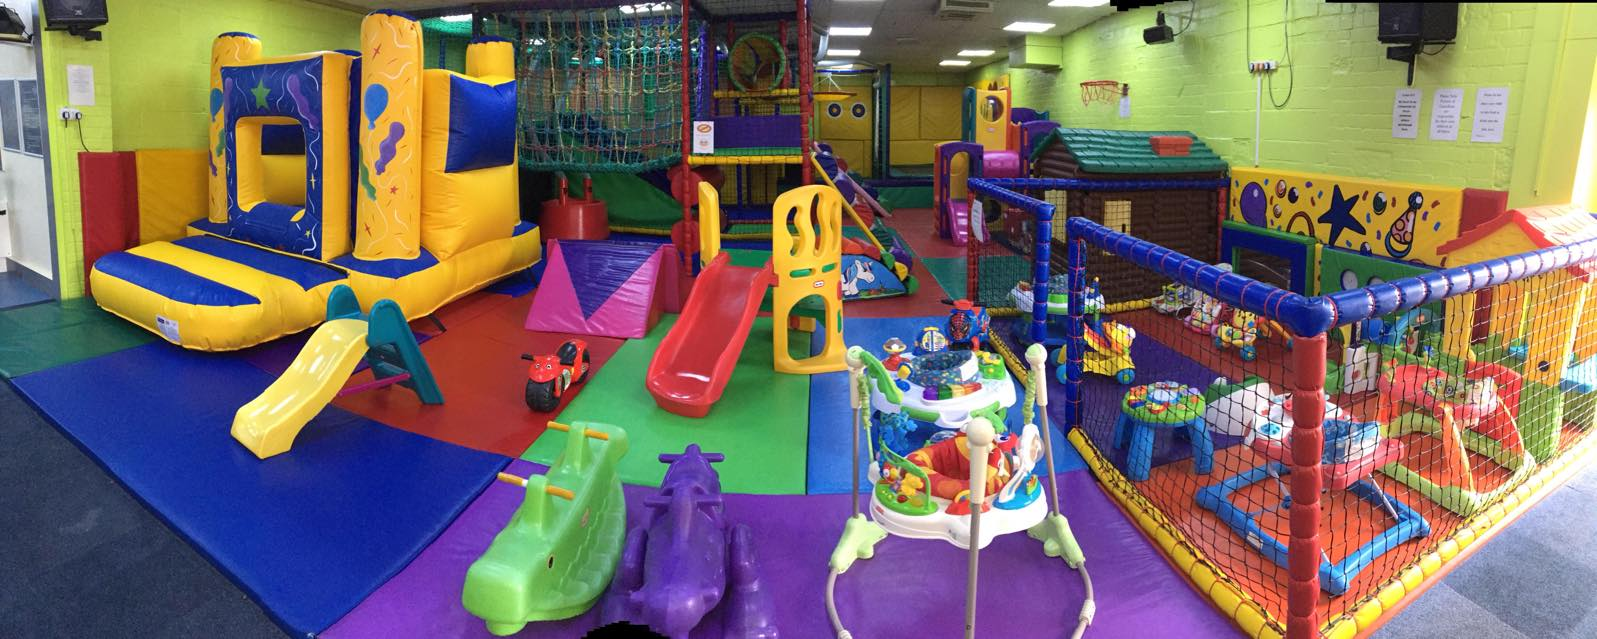 K.Somerford-Fantastic little soft play. staff are great and nothing seems to be too much trouble. Prices are very good too. 6th July 2019 -